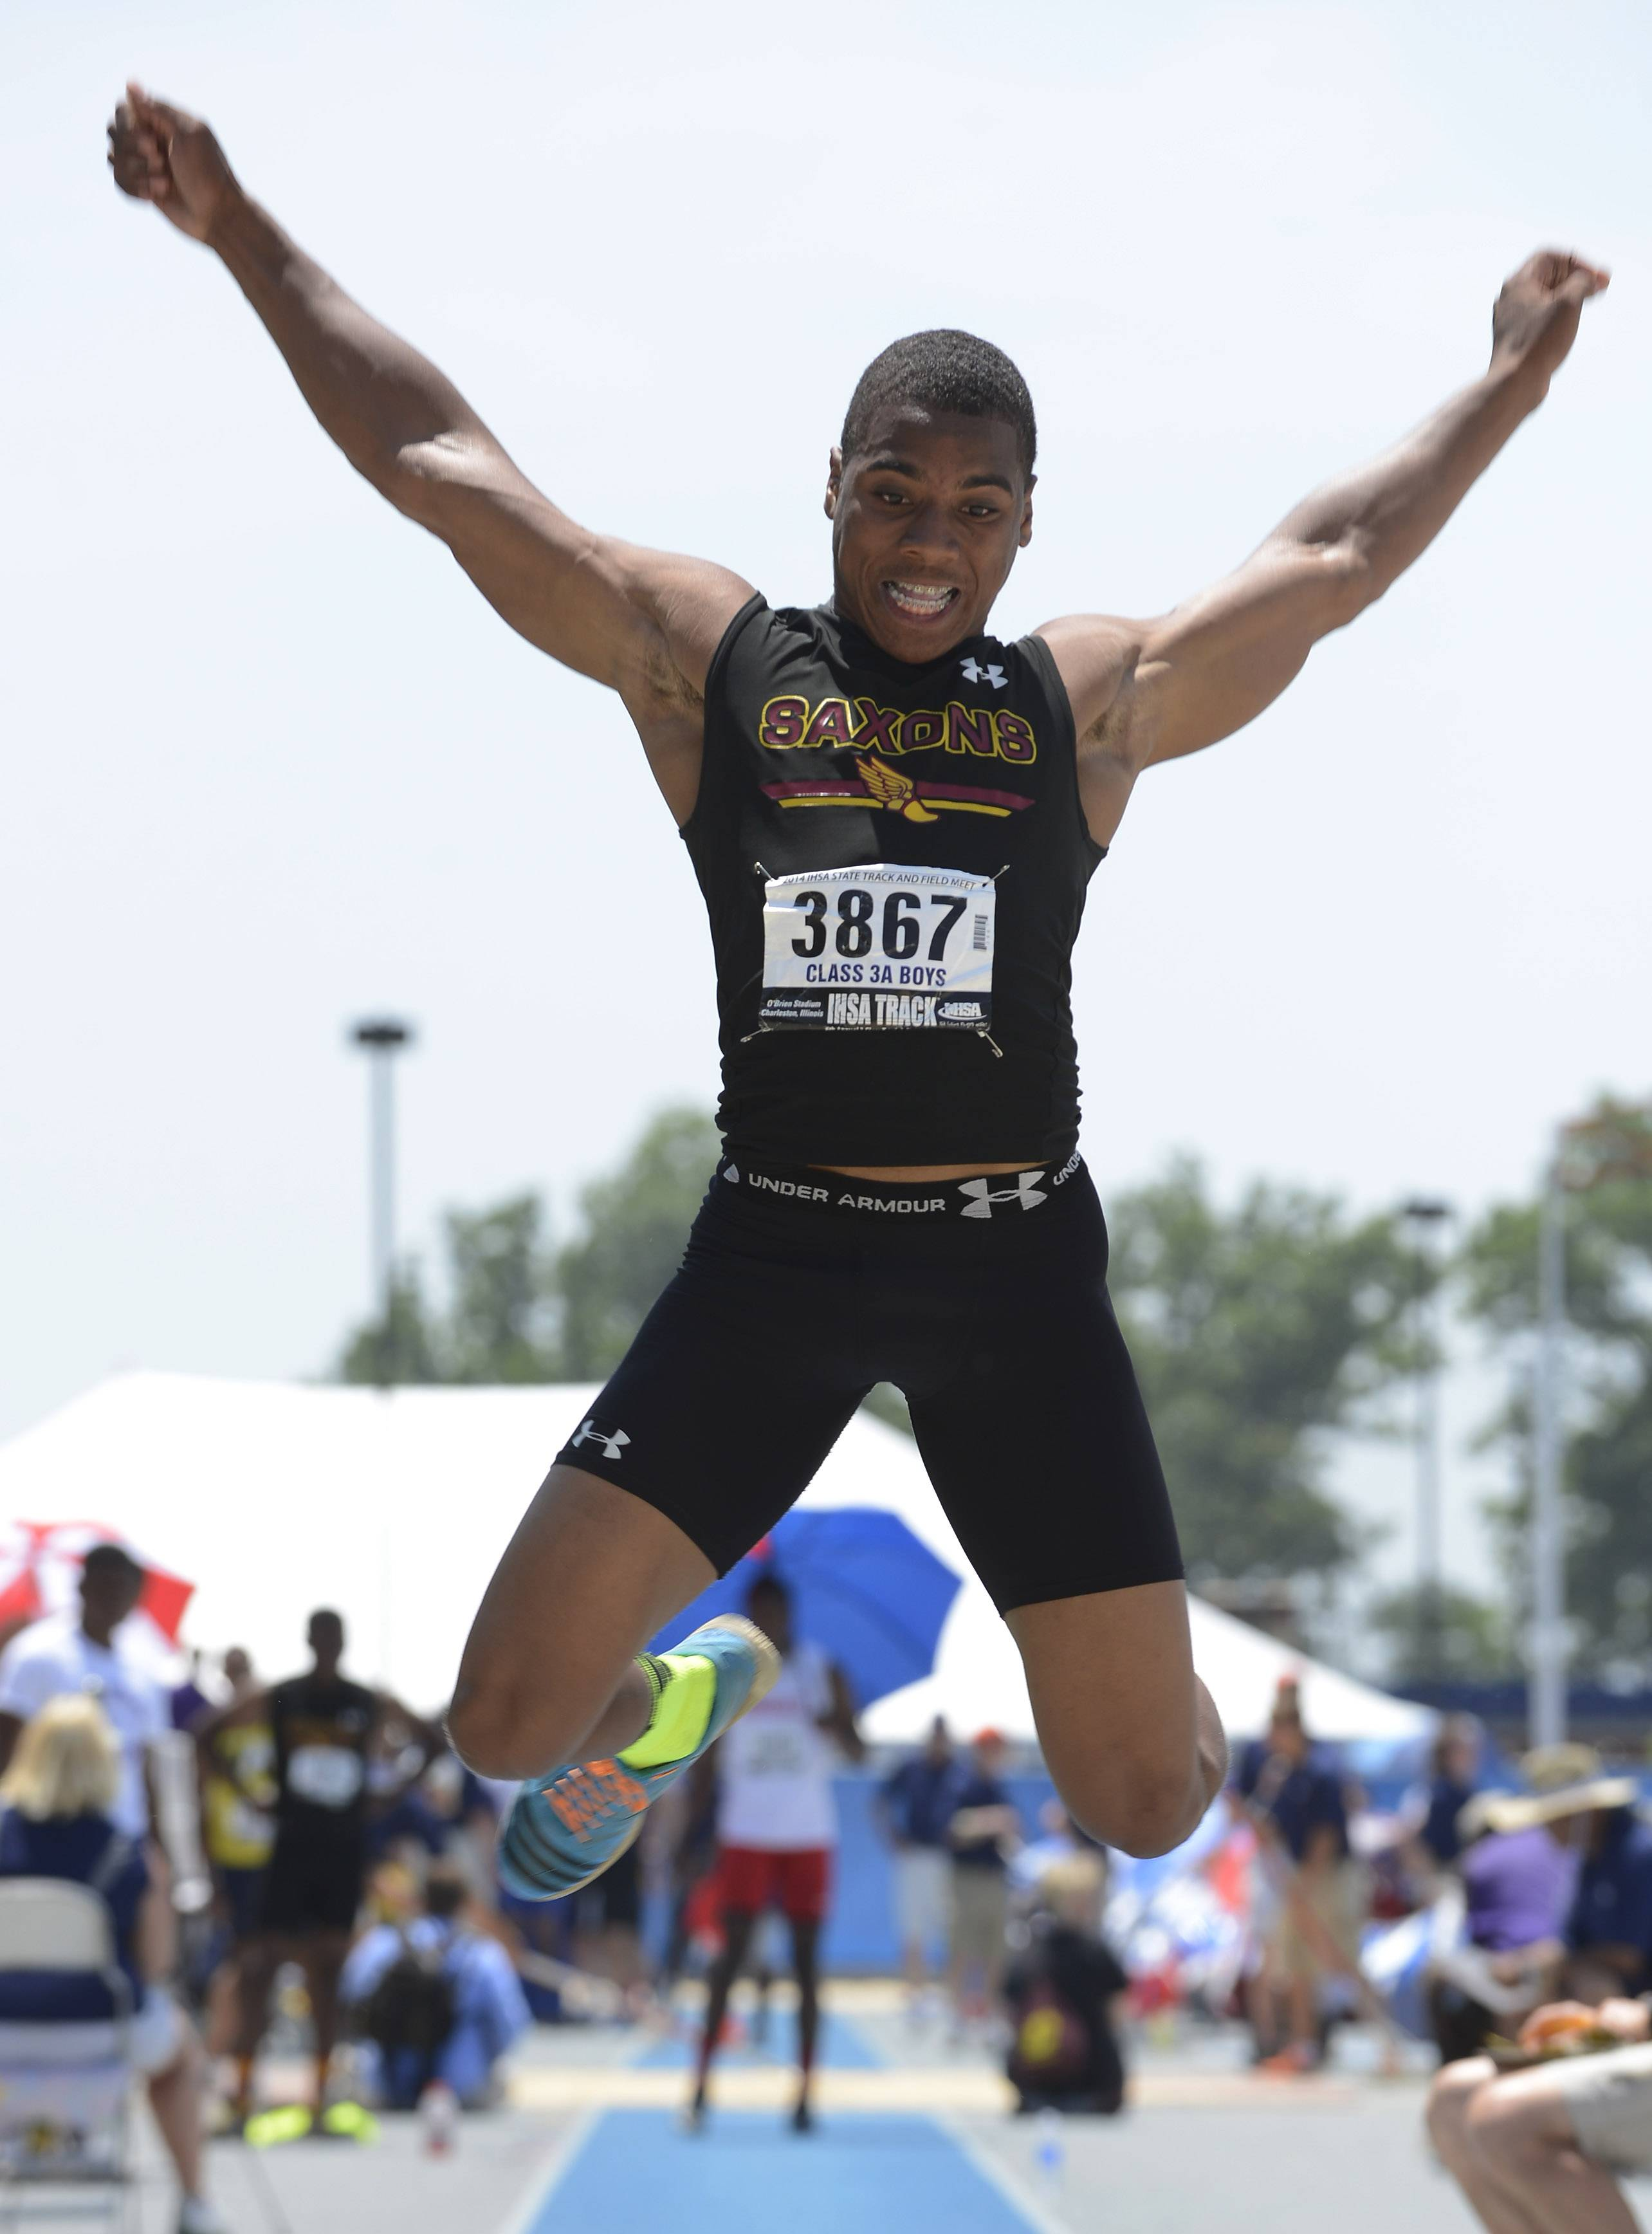 Schaumburg's Stacey Smith competes in the triple jump during the Class 3A boys track and field state finals in Charleston.